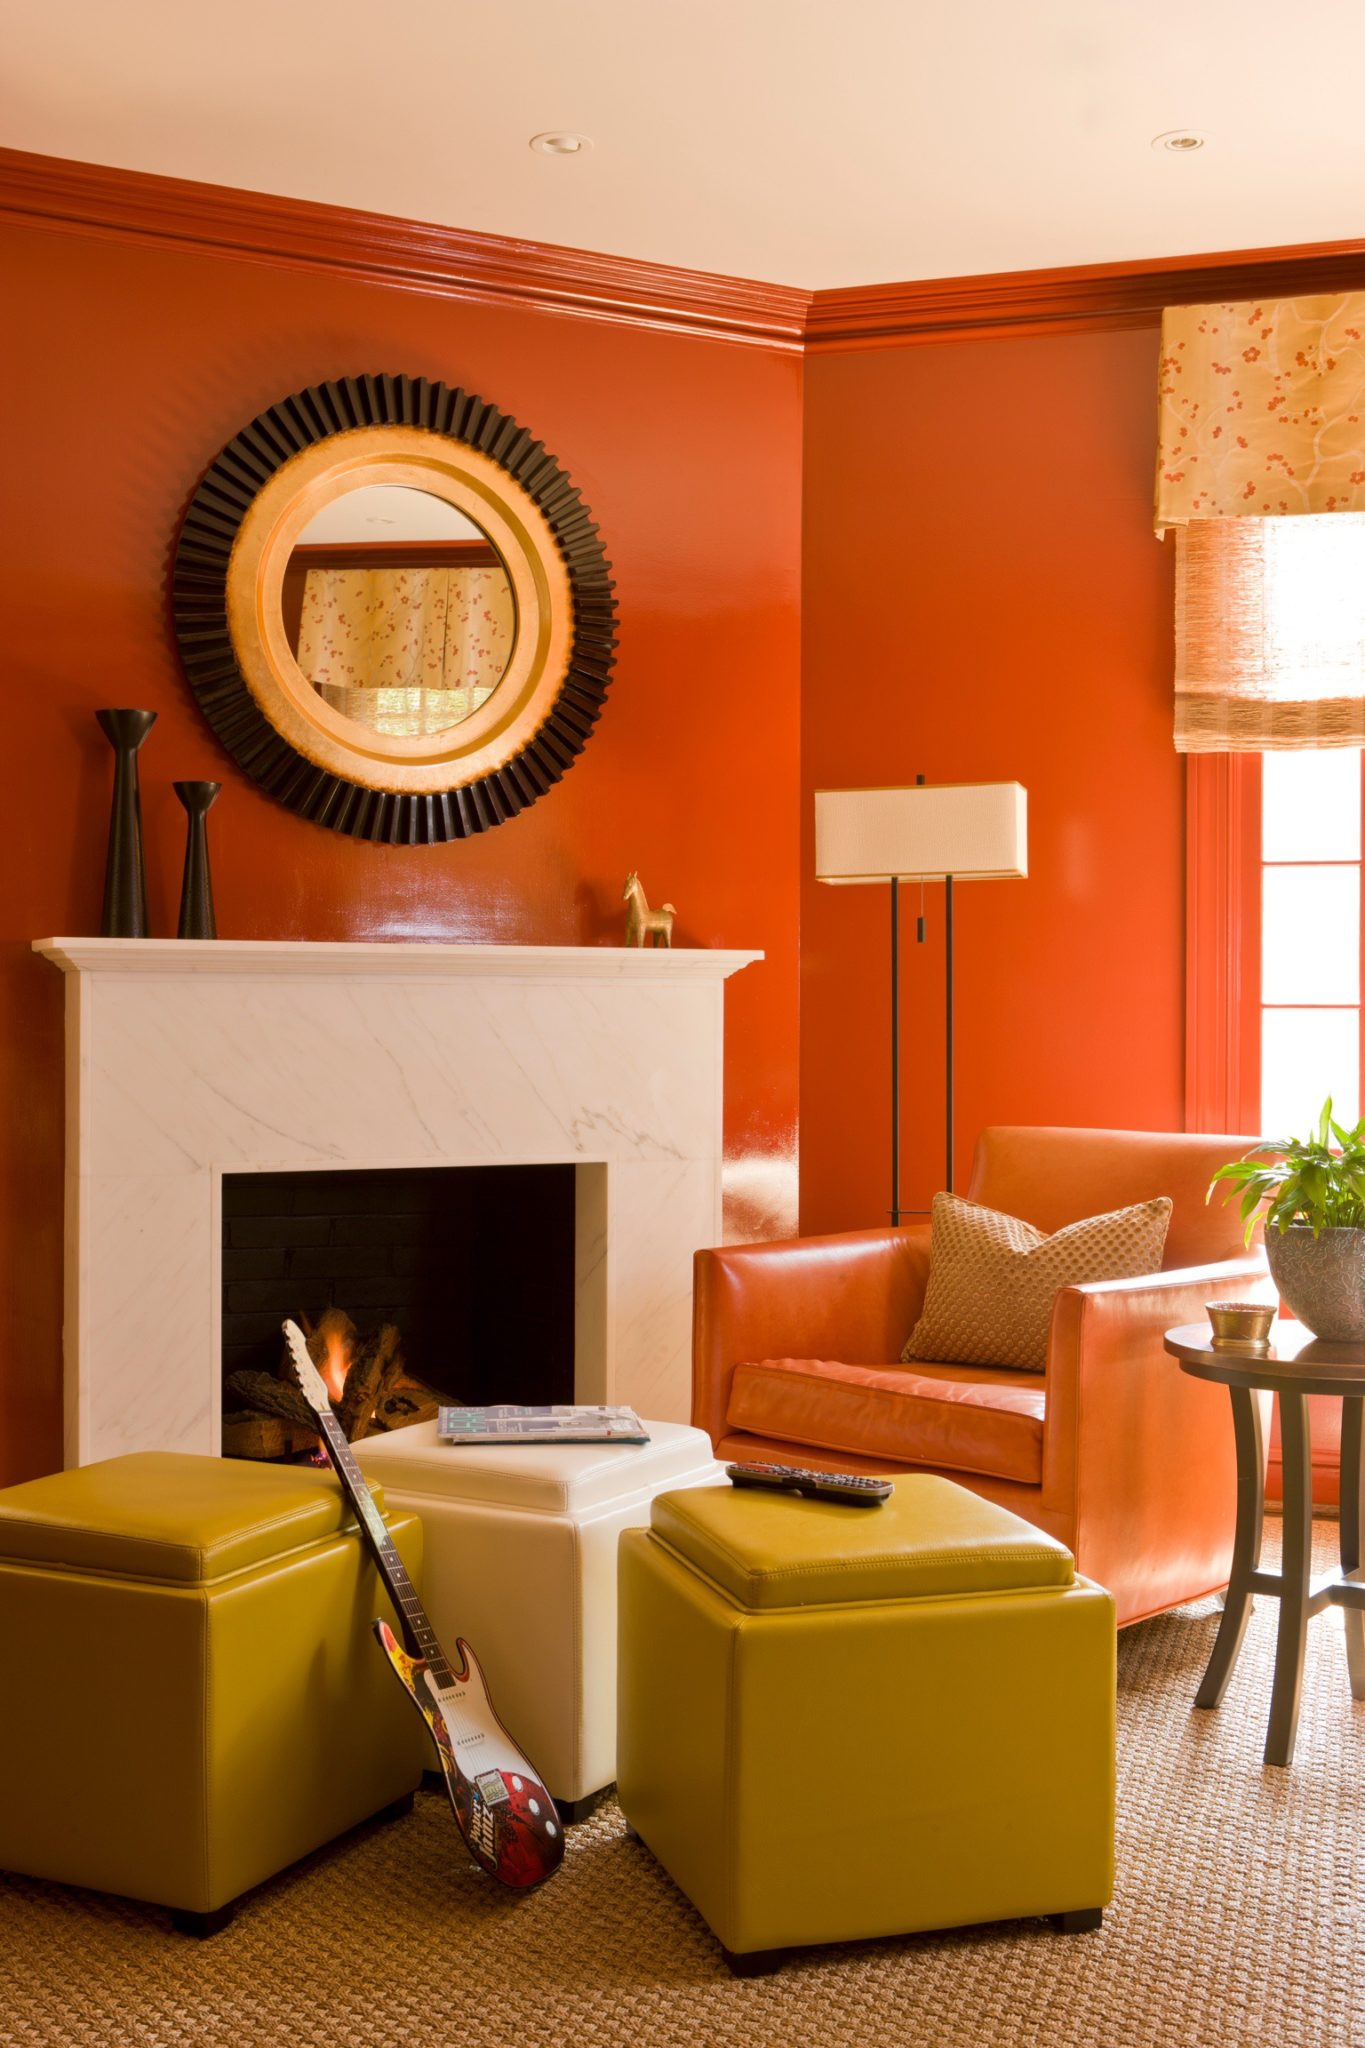 NW Washington Family Room by Kathryn Ivey Interiors